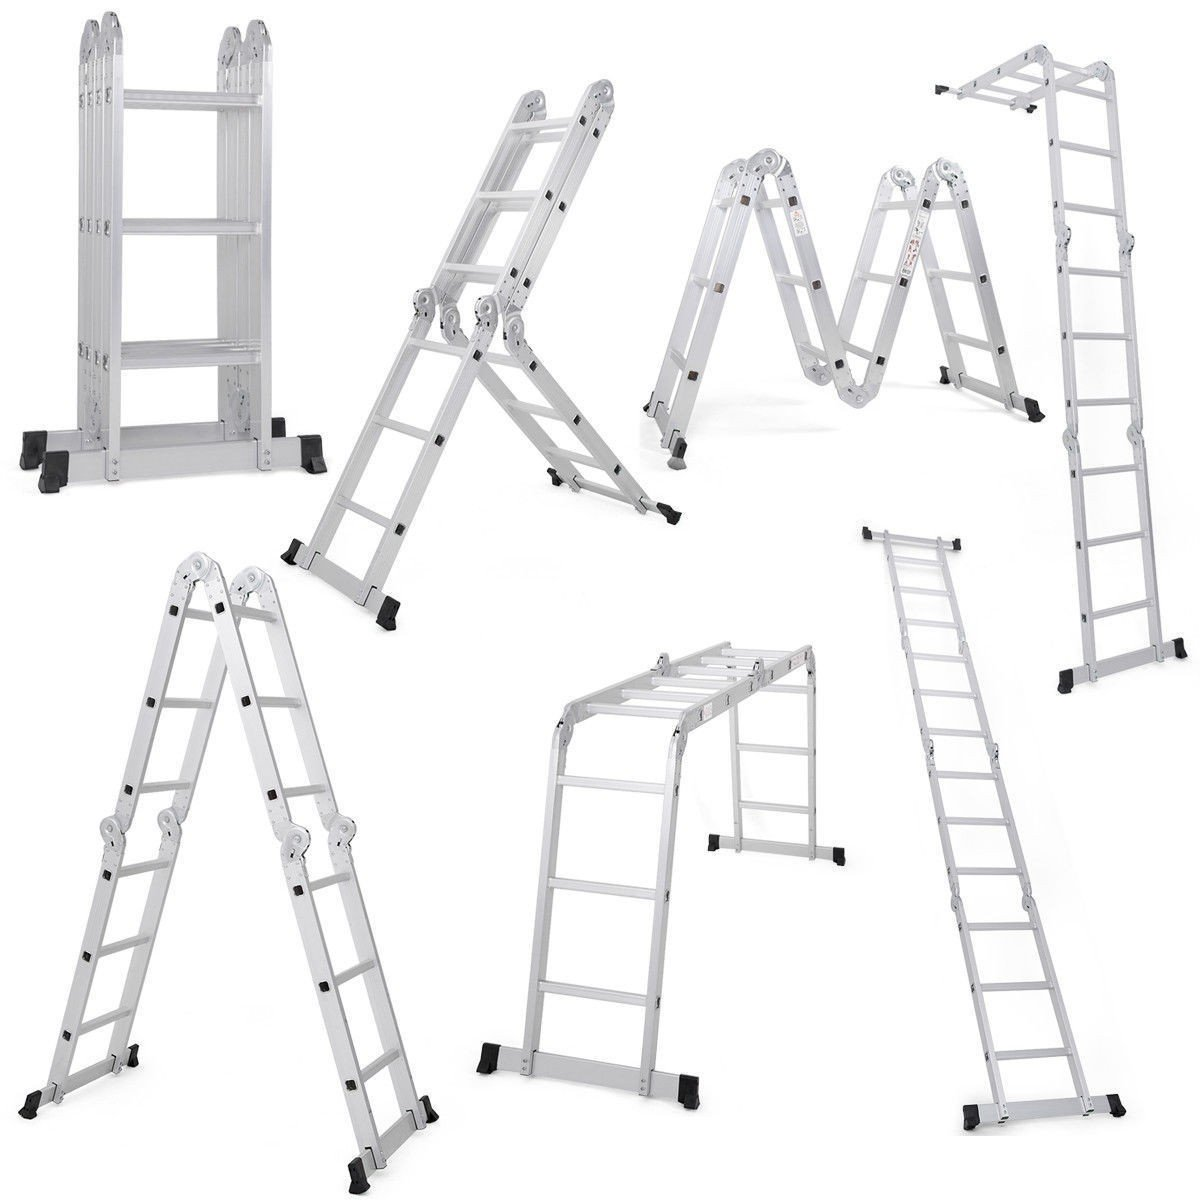 Custpromo 12.5FT EN131 Heavy Duty Multi Purpose Folding Step Ladder Multi Purpose Folding Aluminum Extendable Scaffold Ladder with Safety Locking Hinges 330lb Capacity